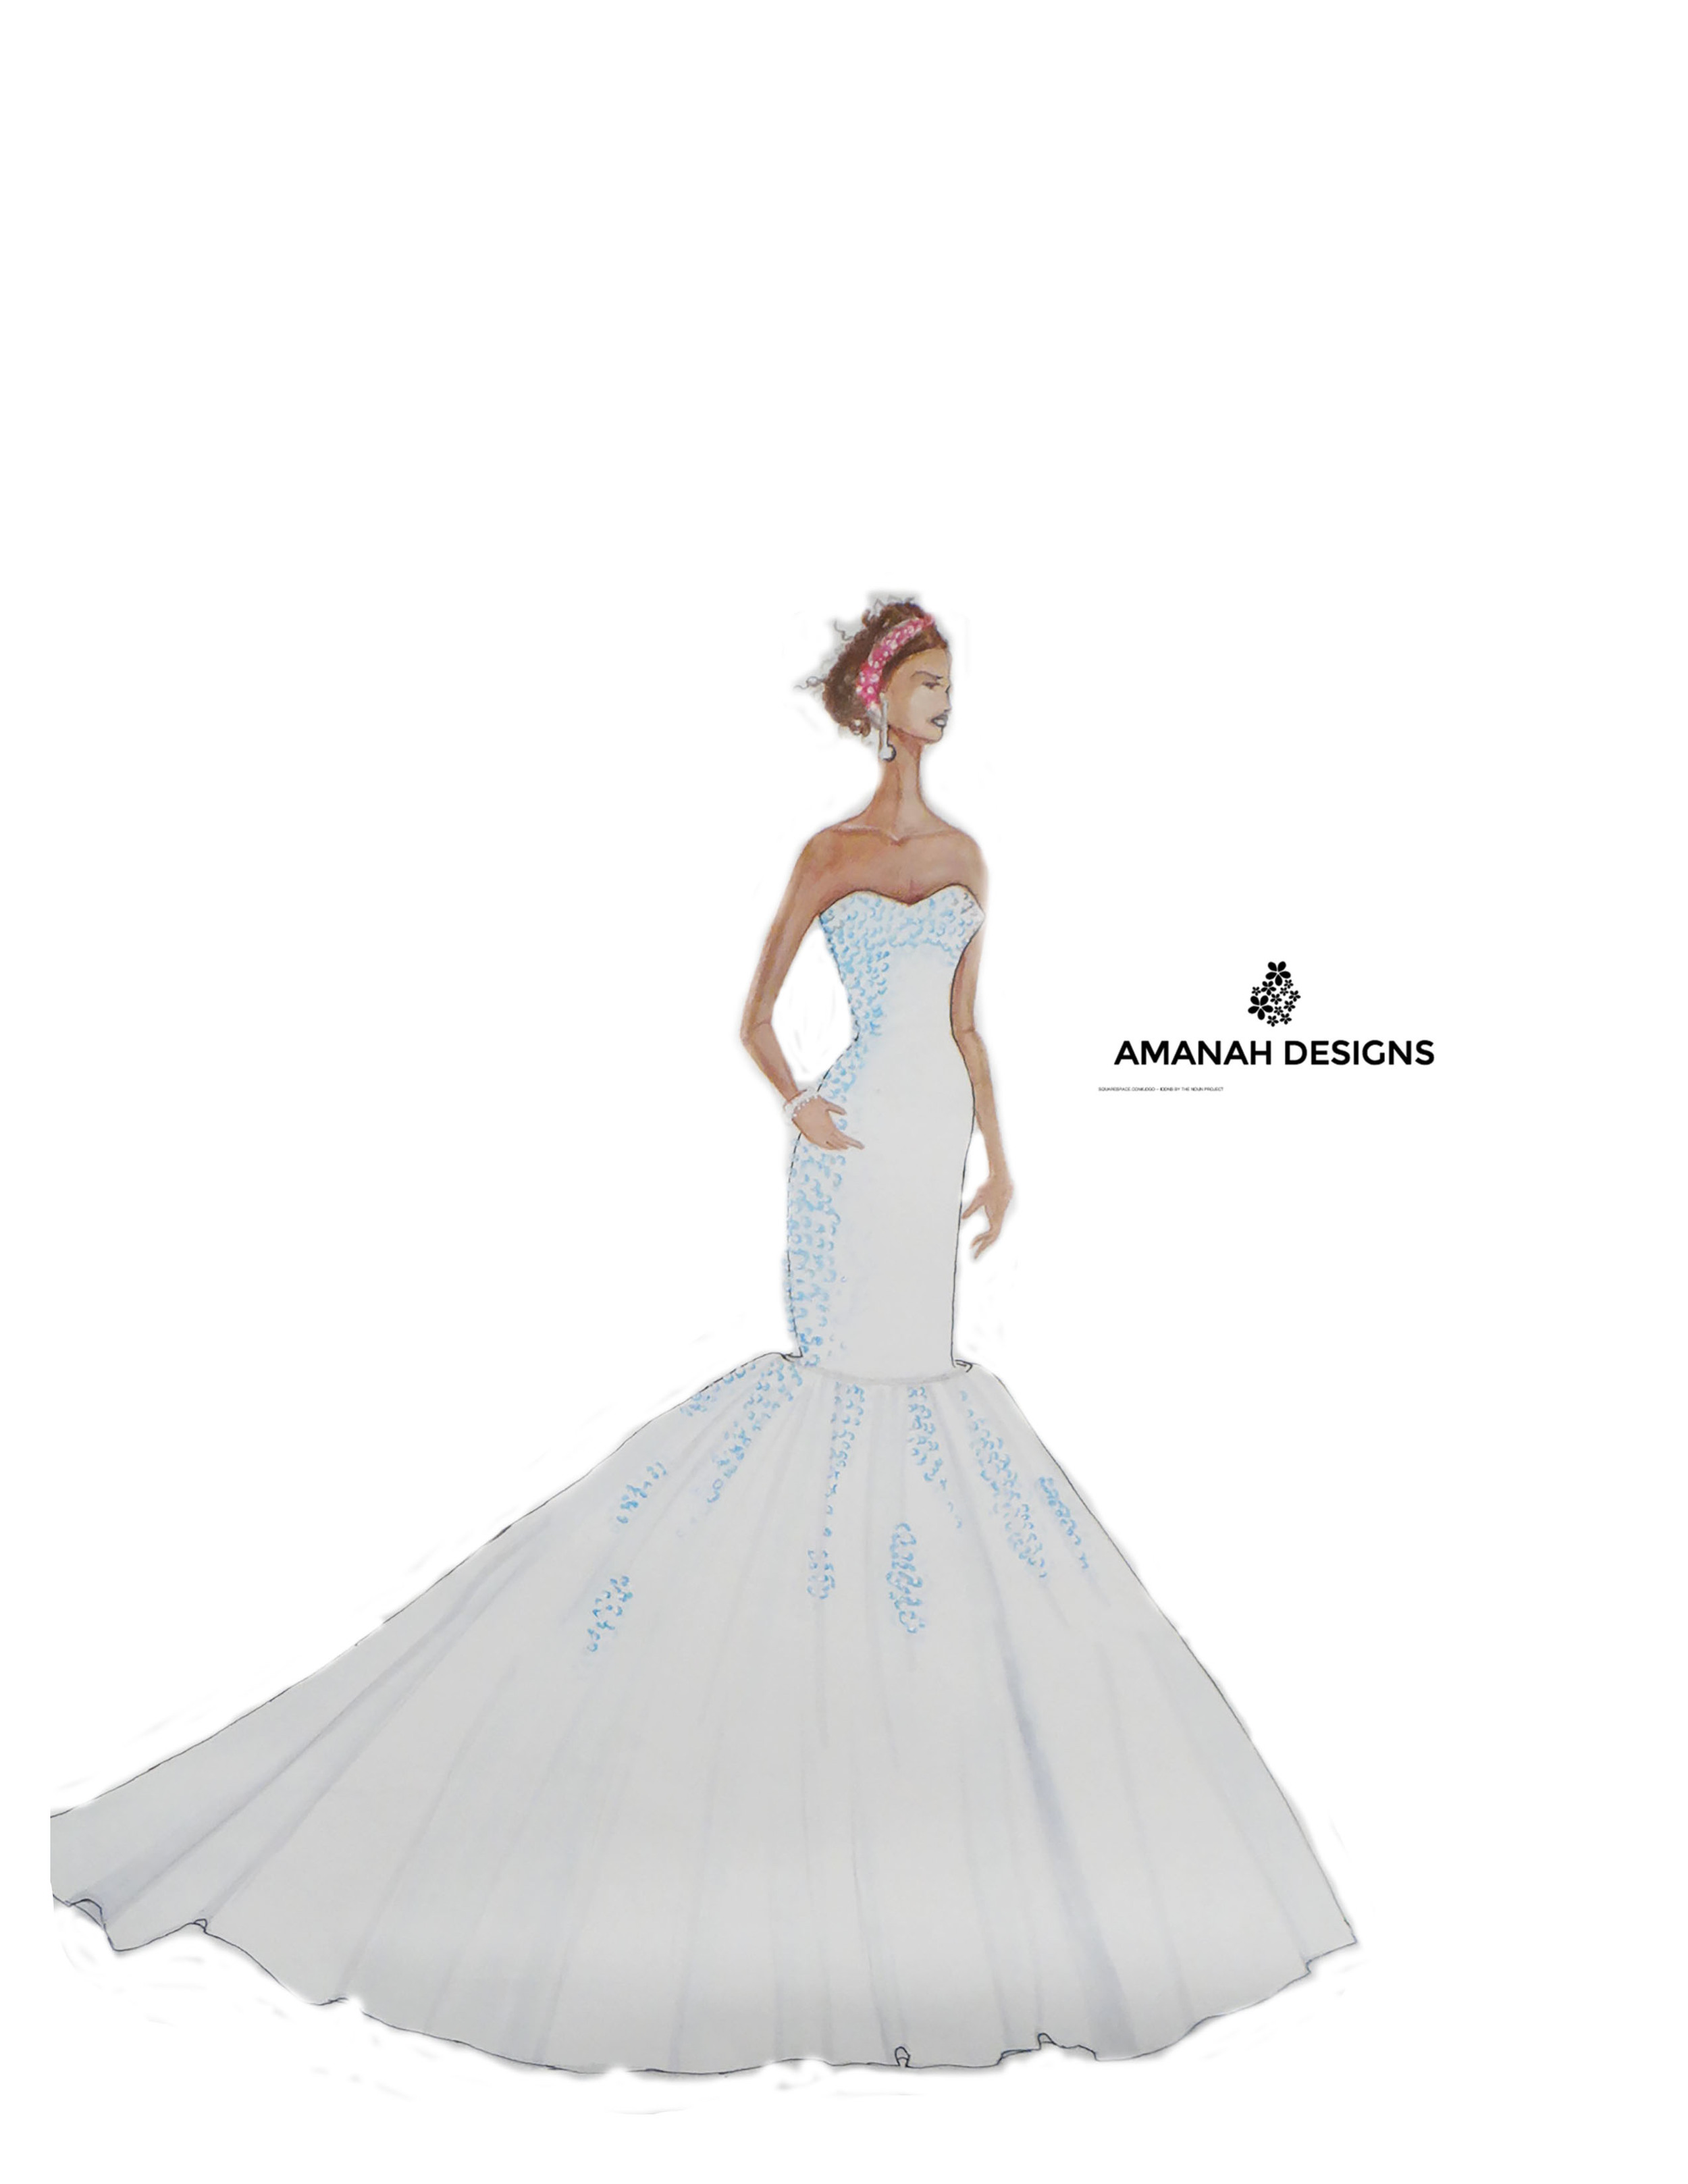 Style Description: Bustier- style wedding/ evening dress with blue rhinestones and a long trail at the back.